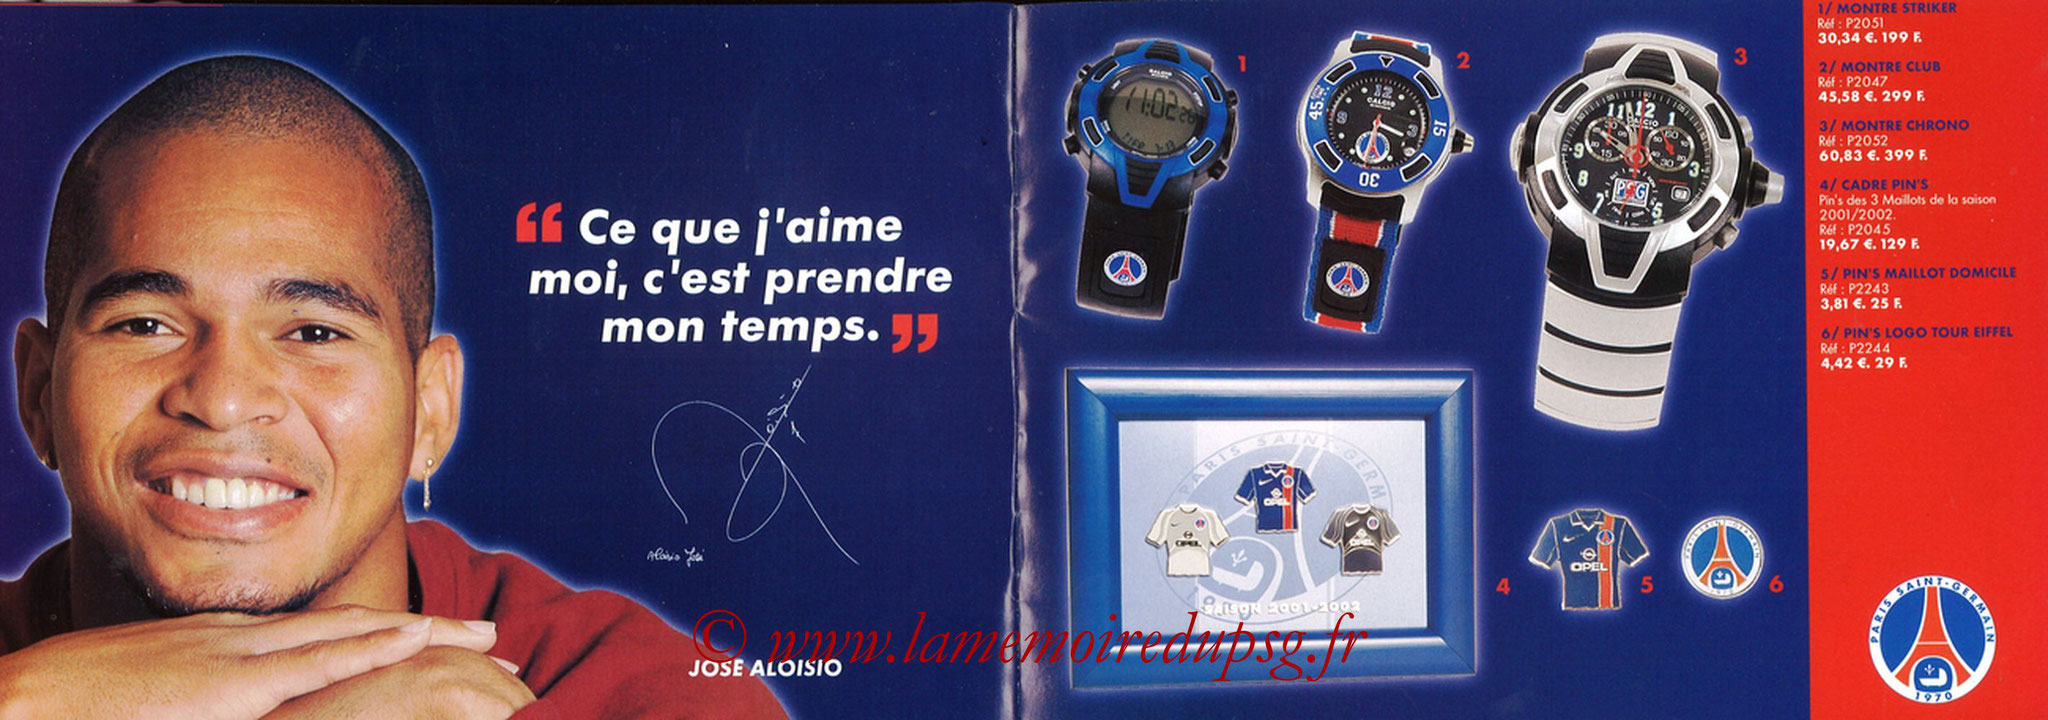 Catalogue PSG - 2001-02 - Noêl - Pages 16 et 17